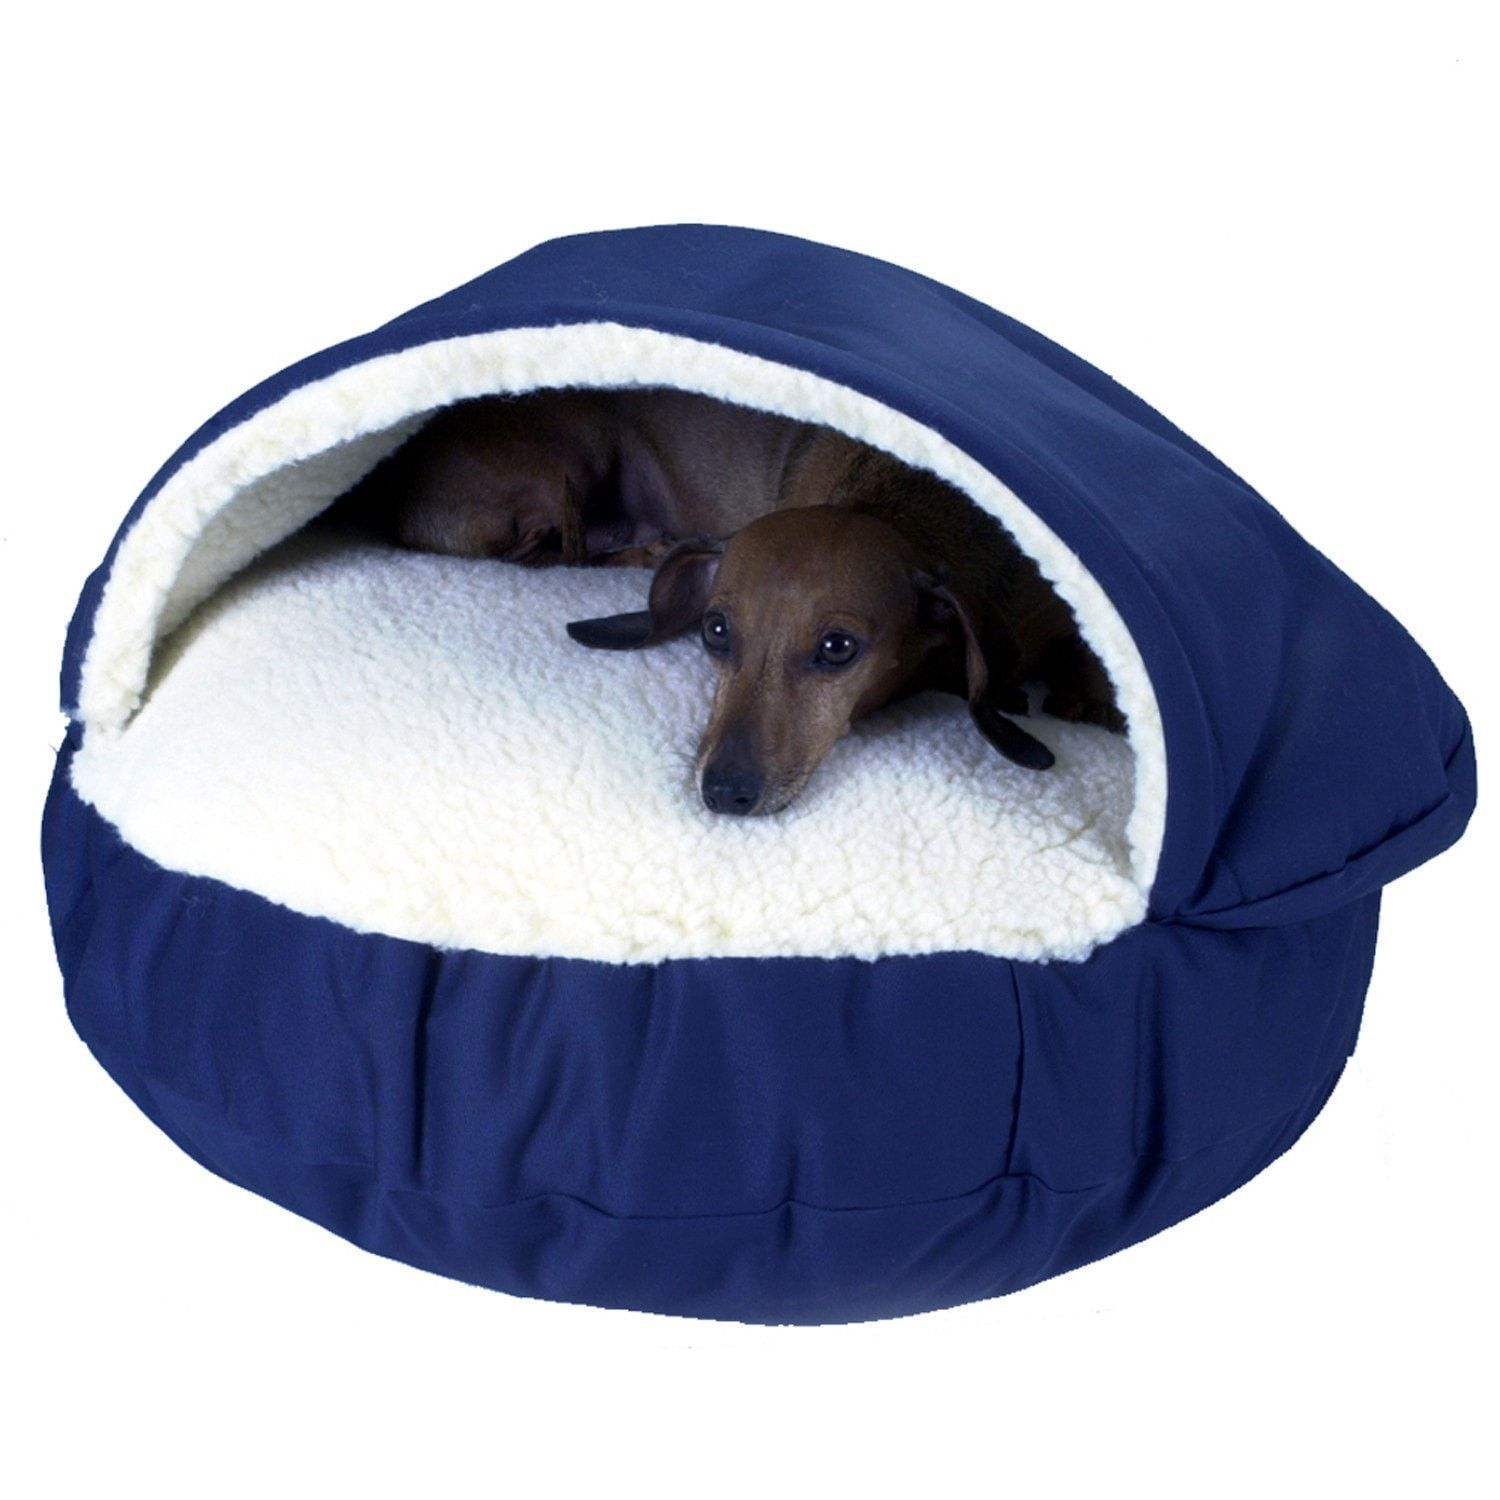 Cozy Cave Dog Bed Cedar is an alternative to traditional